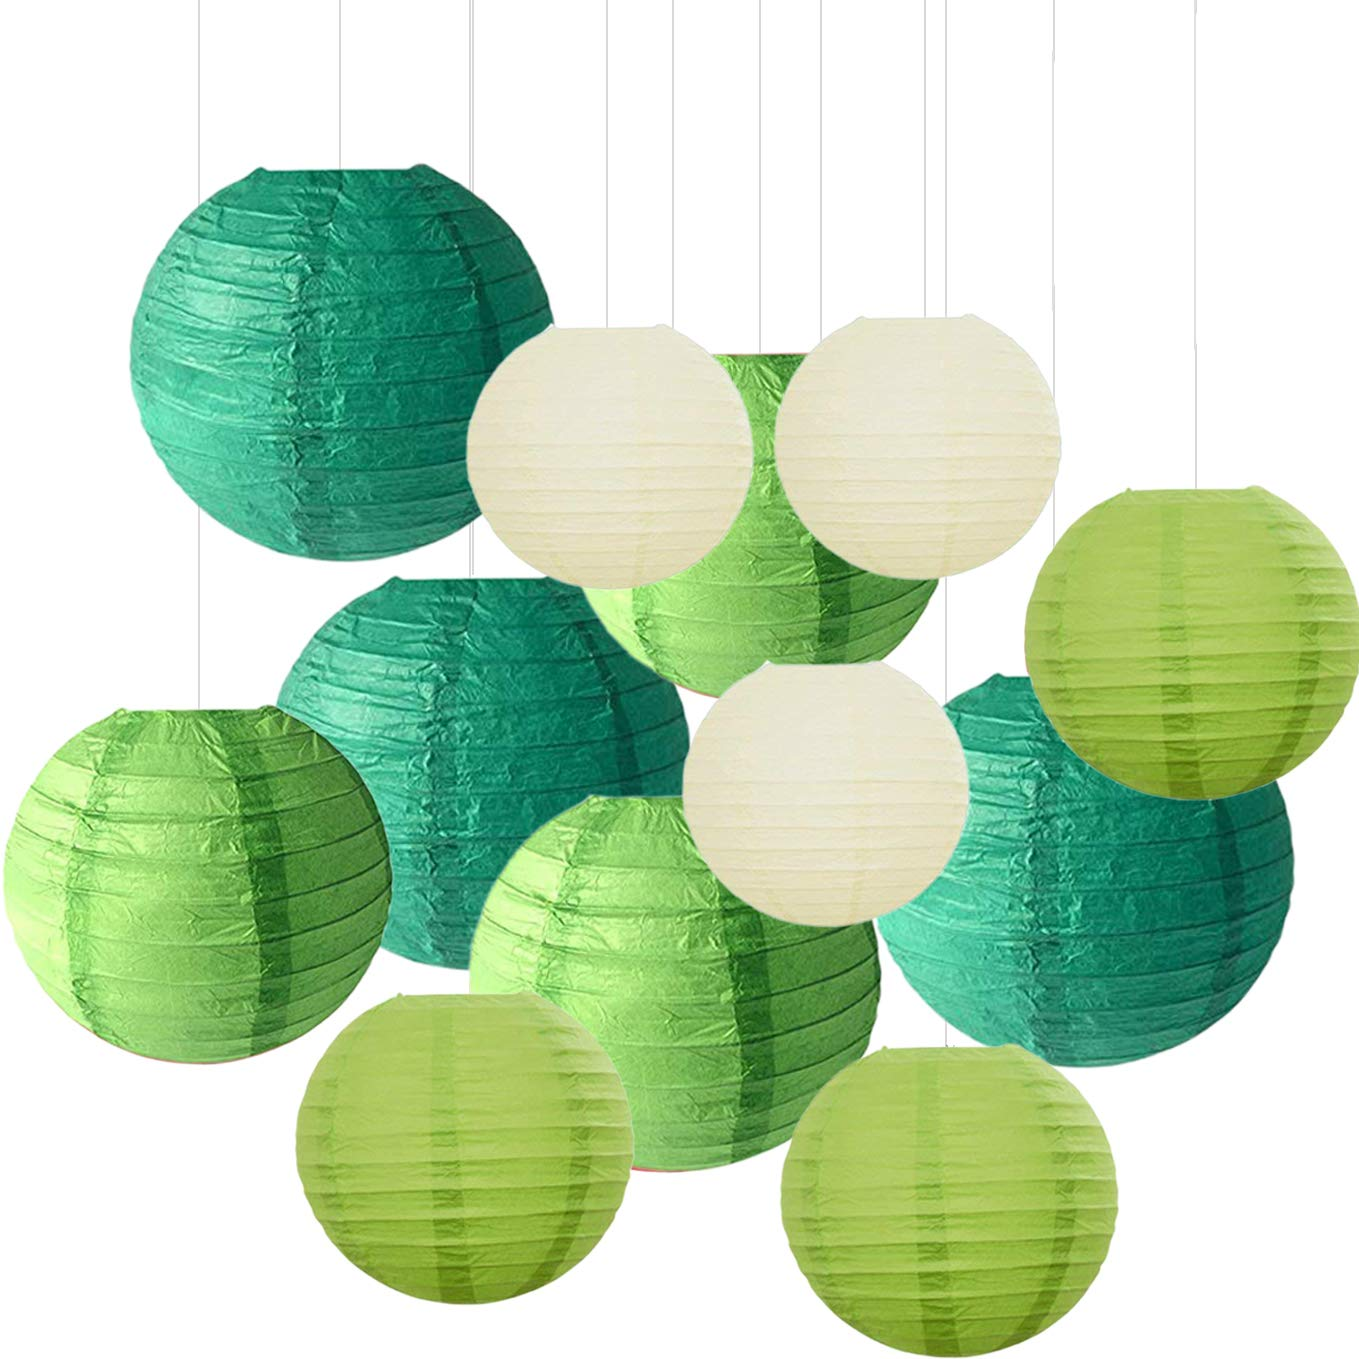 and Weddings Parties Red 12PCS Paper Lanterns with Assorted Colors and Sizes Paper Lanterns Decorative,Chinese//Japanese Paper Hanging Decorations Ball Lanterns Lamps for Home Decor